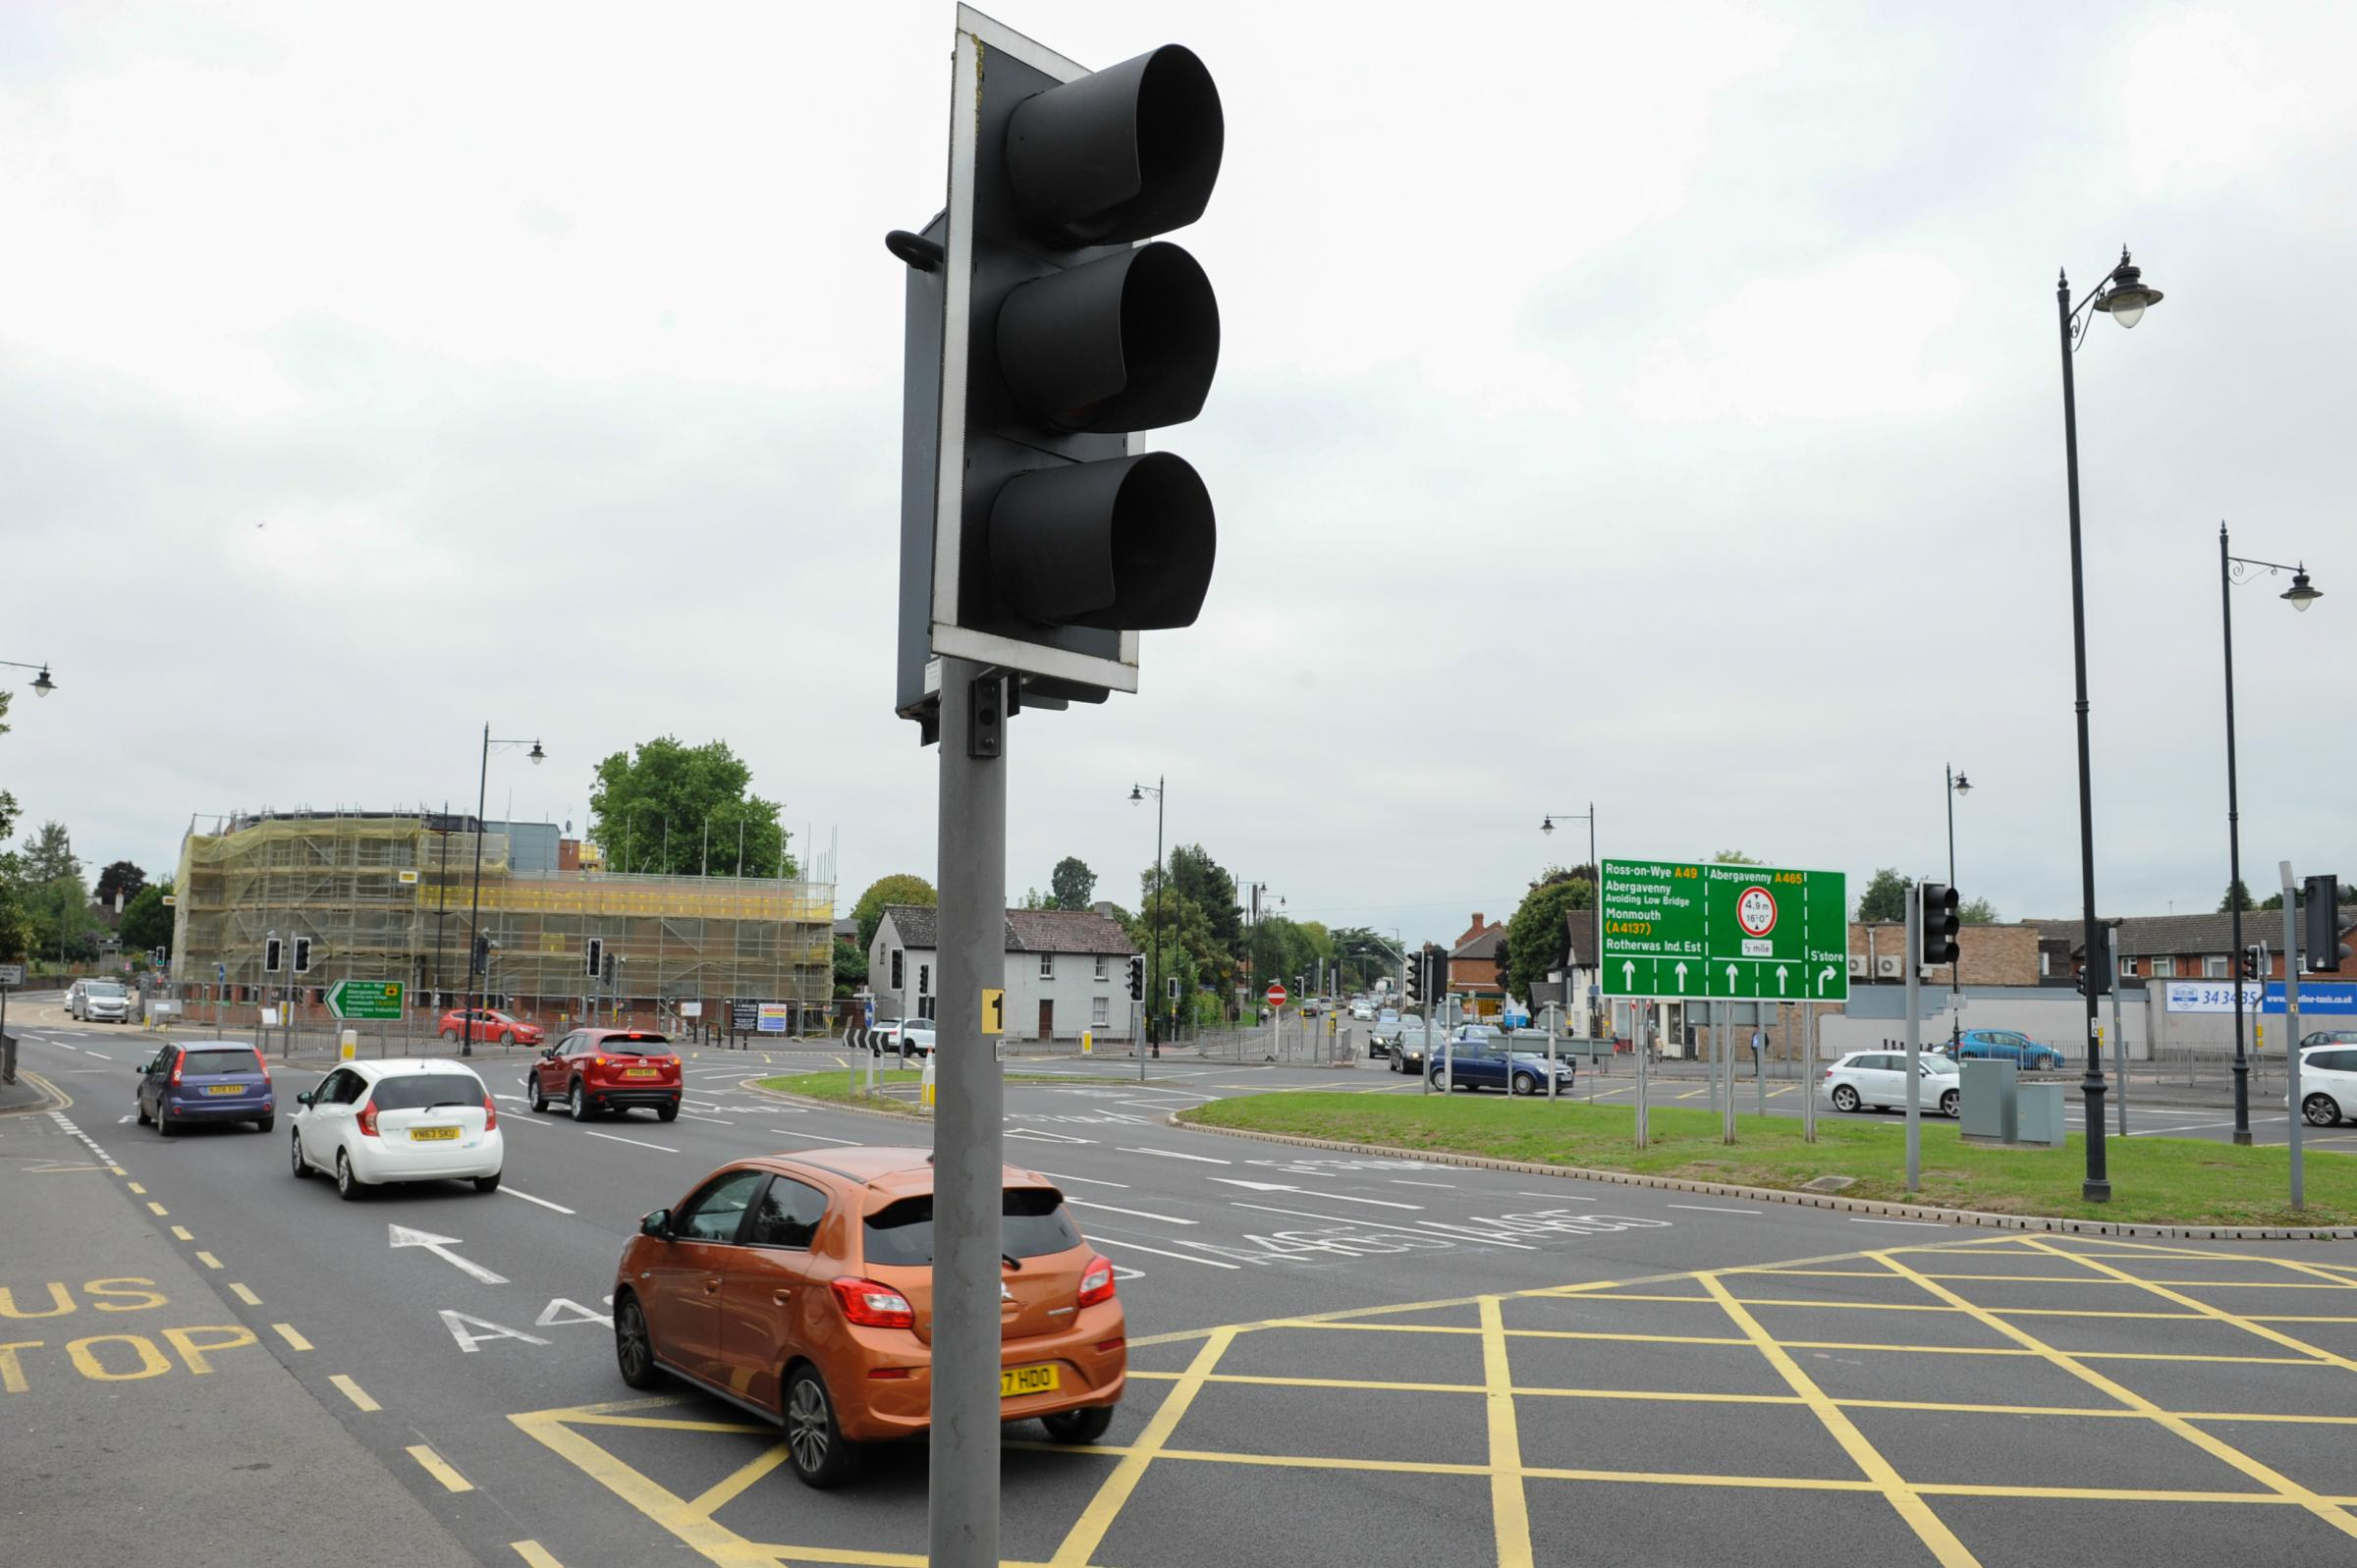 Belmont (ASDA) roundabout, Hereford.